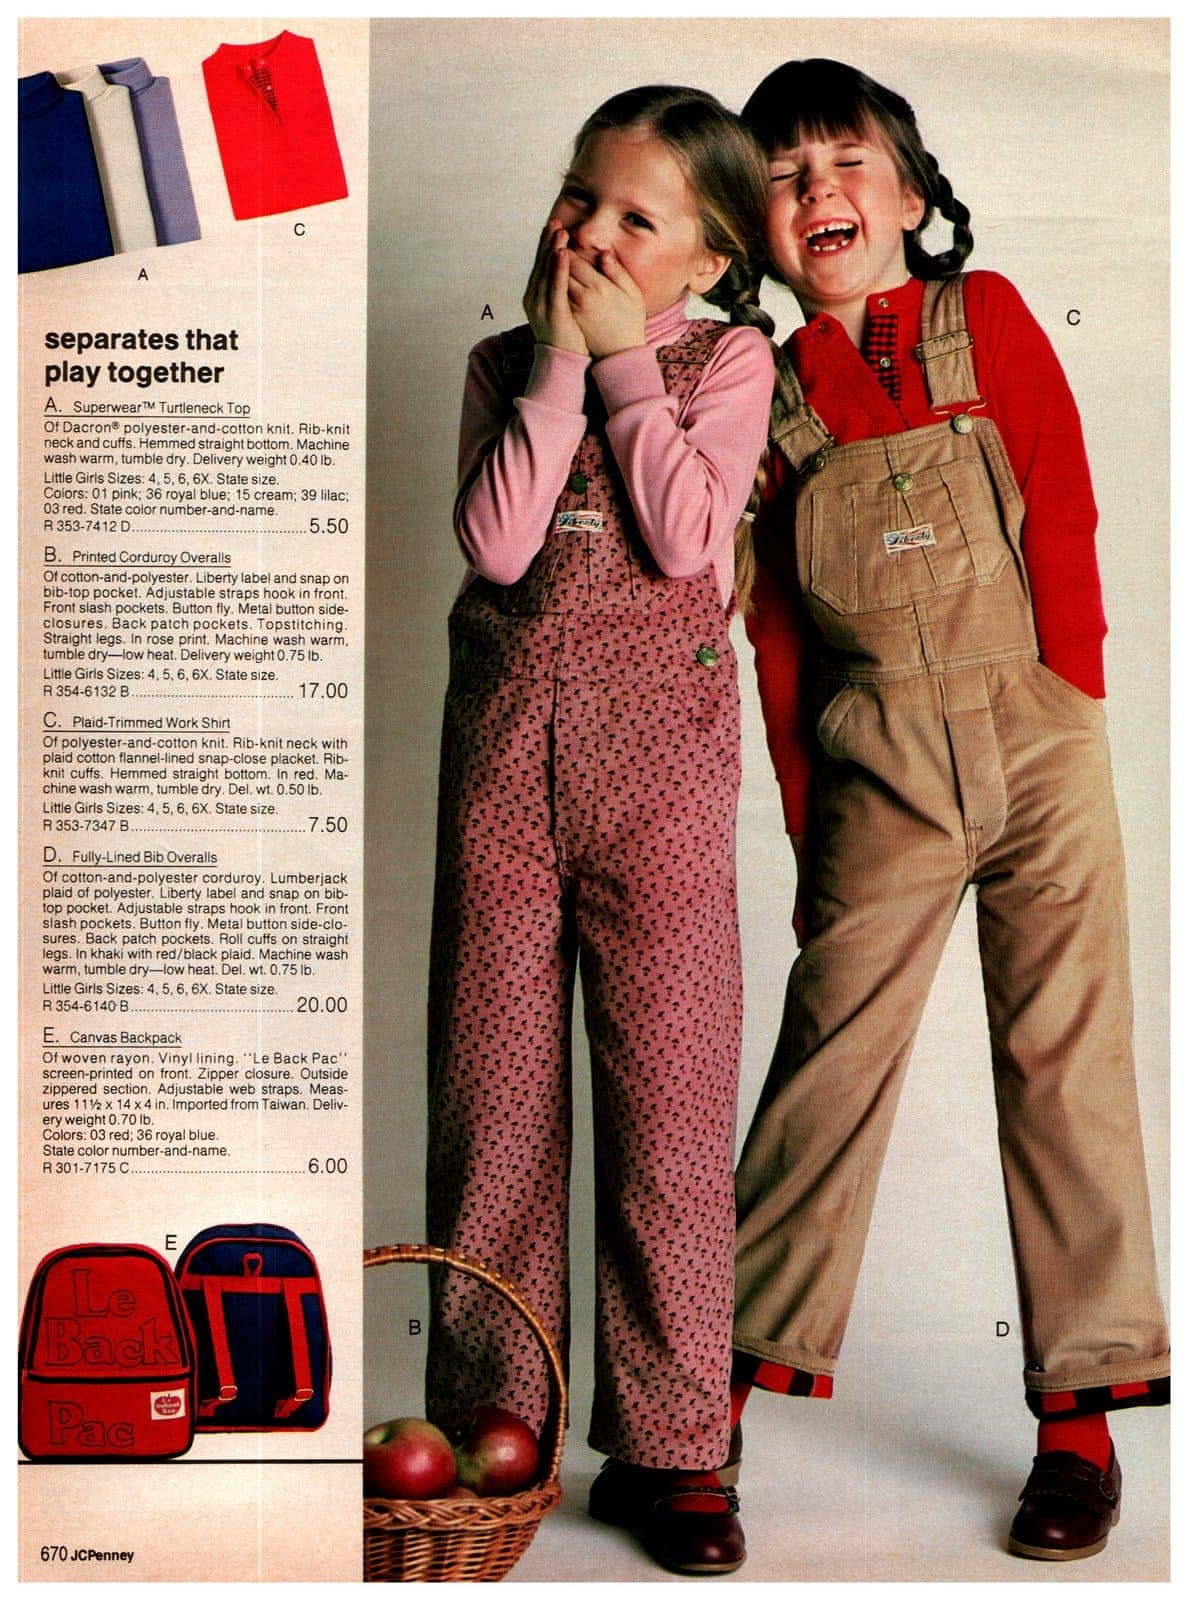 Corduroy bib overalls for little girls, with turtleneck tops and plaid-trimmed work shirts